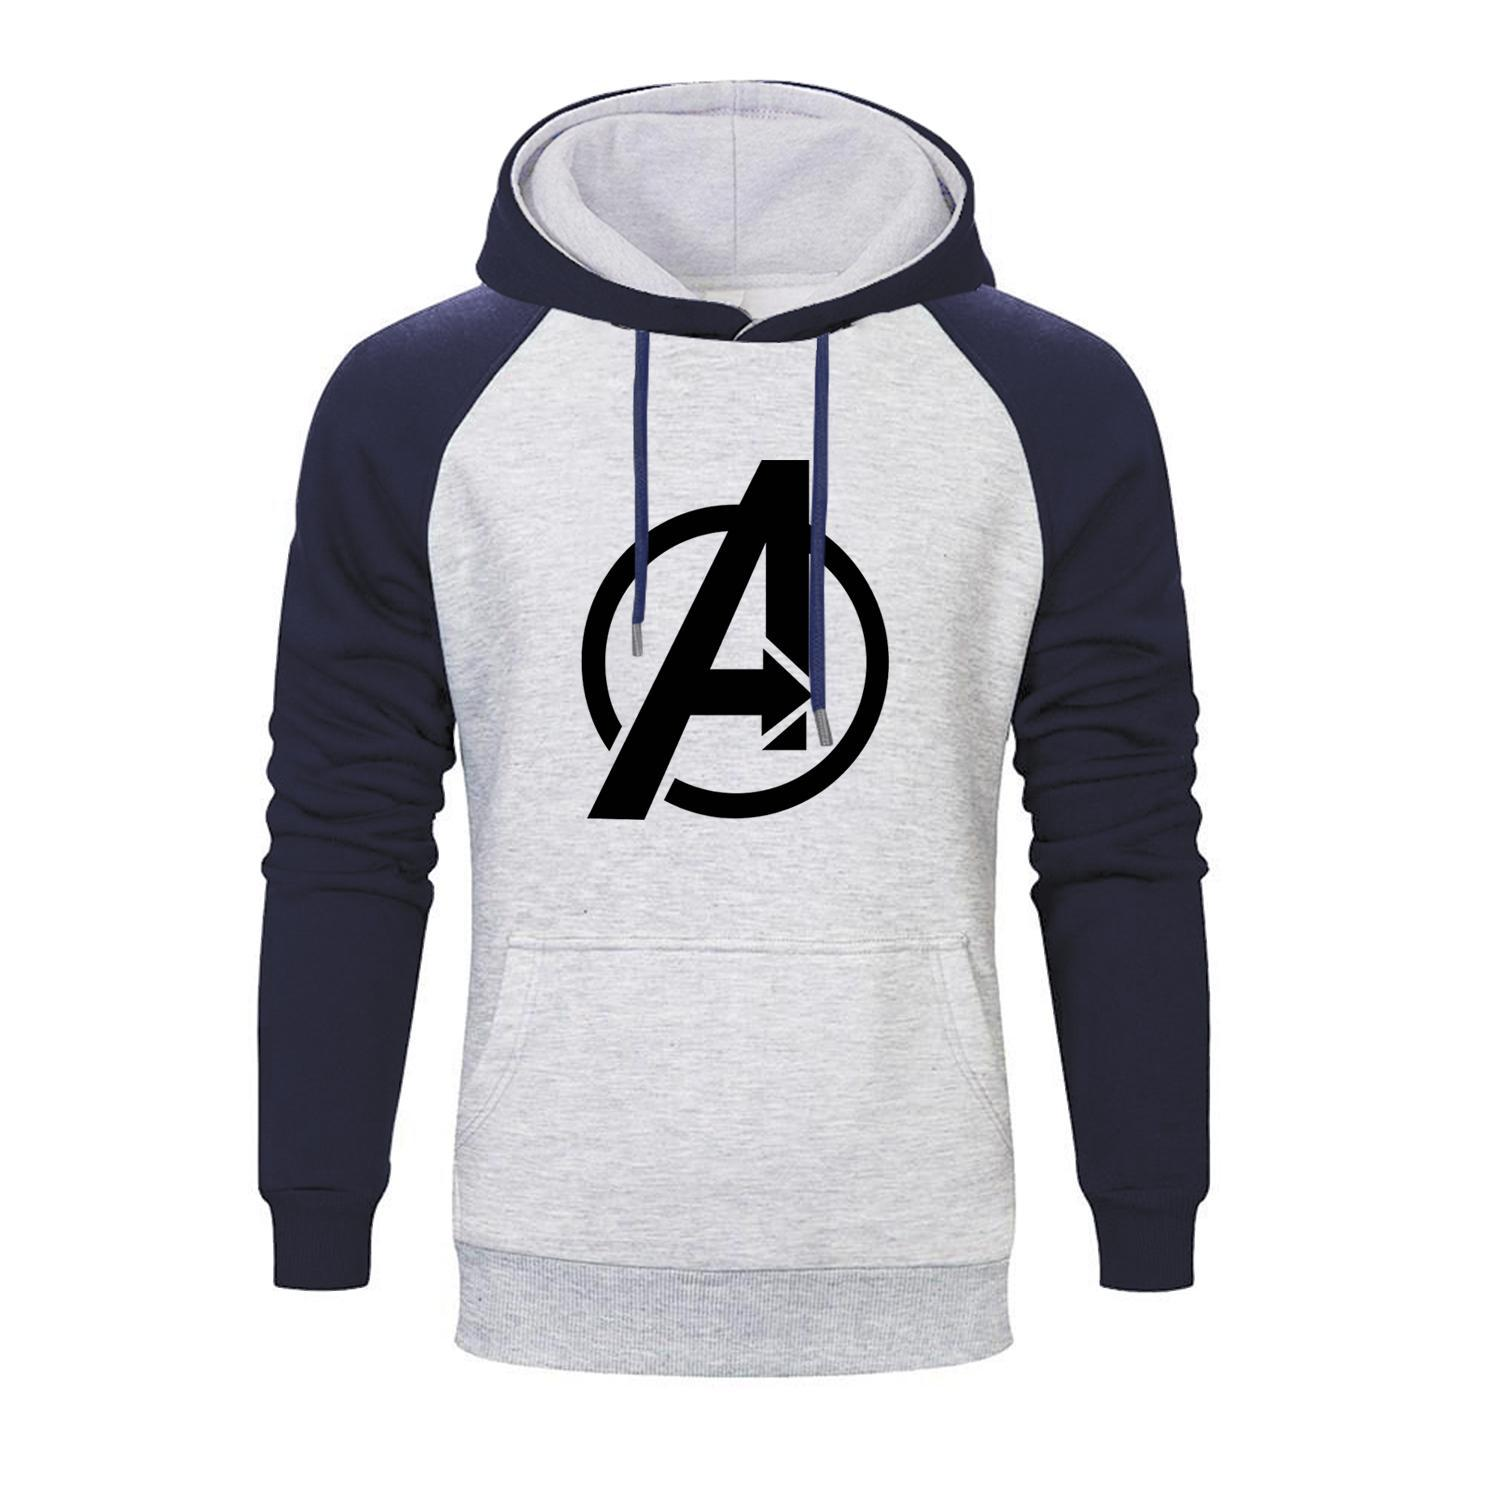 Marvel Movie Avengers Logo Printed Raglan Hoodies Men Autumn Thanos Infinity Gauntlet Men's Sweatshirts Brand Pollovers